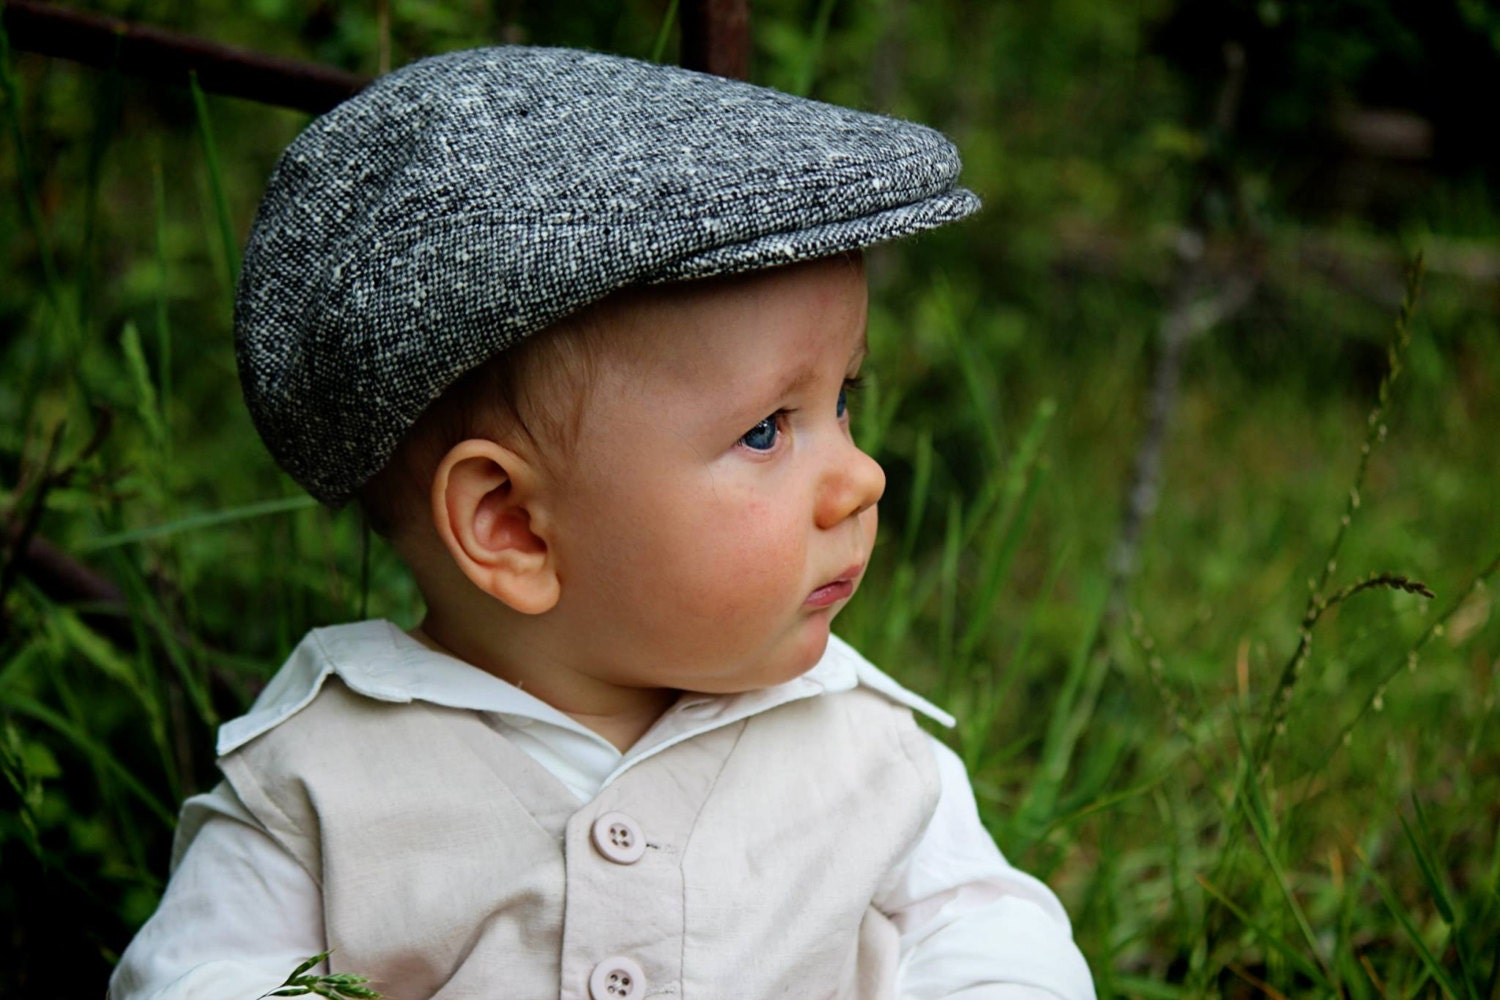 You searched for: baby flat cap! Etsy is the home to thousands of handmade, vintage, and one-of-a-kind products and gifts related to your search. No matter what you're looking for or where you are in the world, our global marketplace of sellers can help you find unique and affordable options. Let's get started!